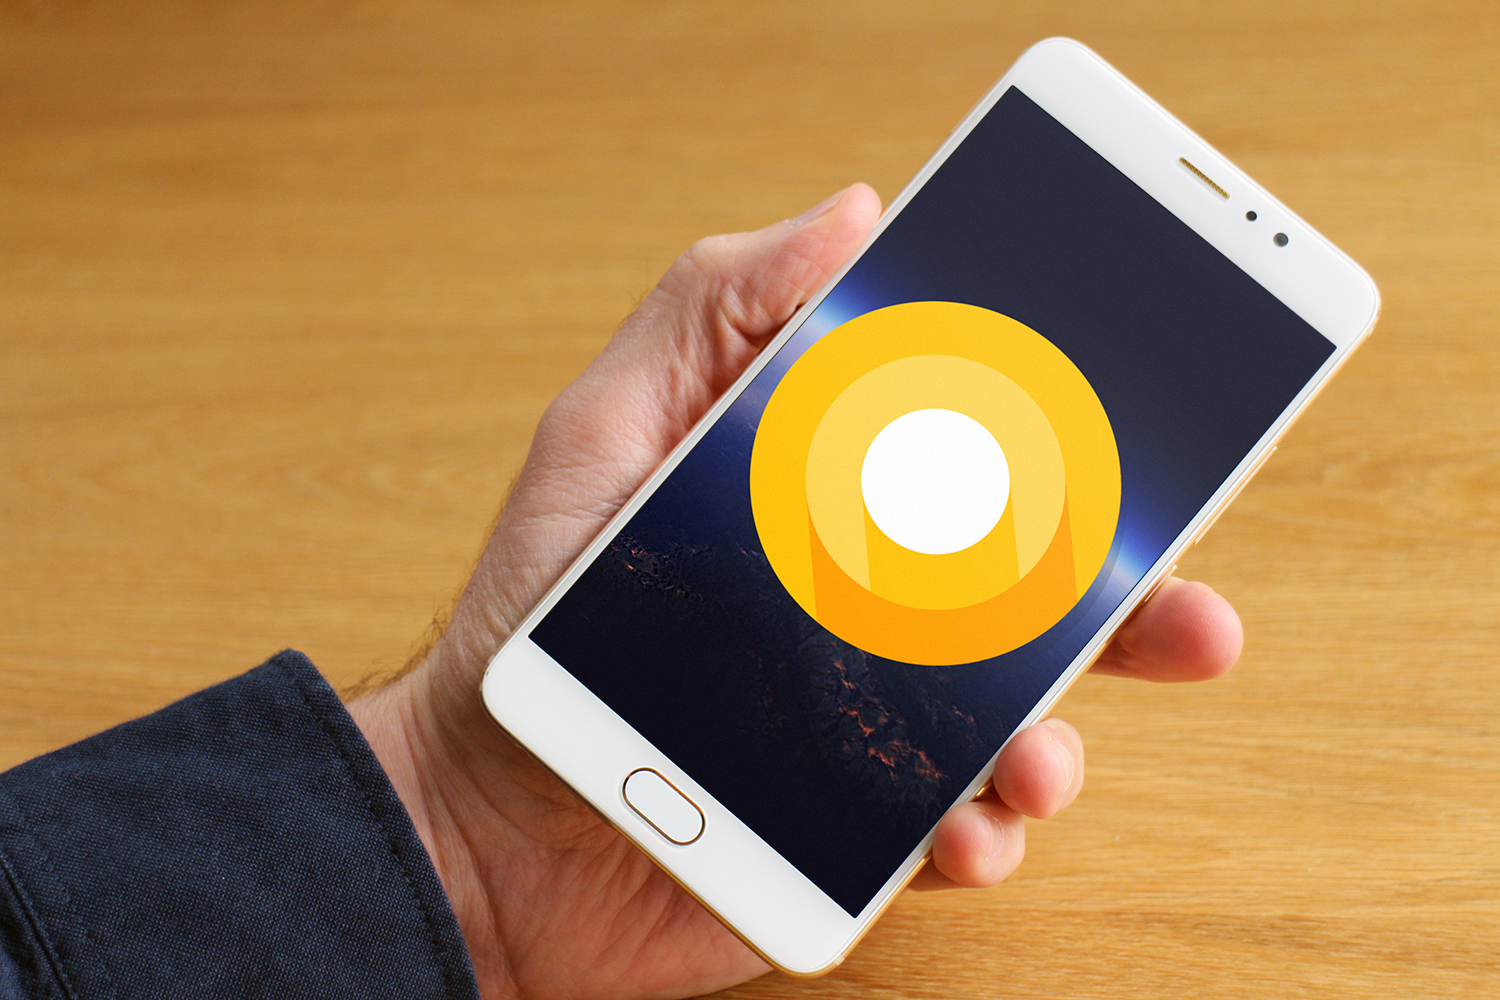 Android O beta program available later this month